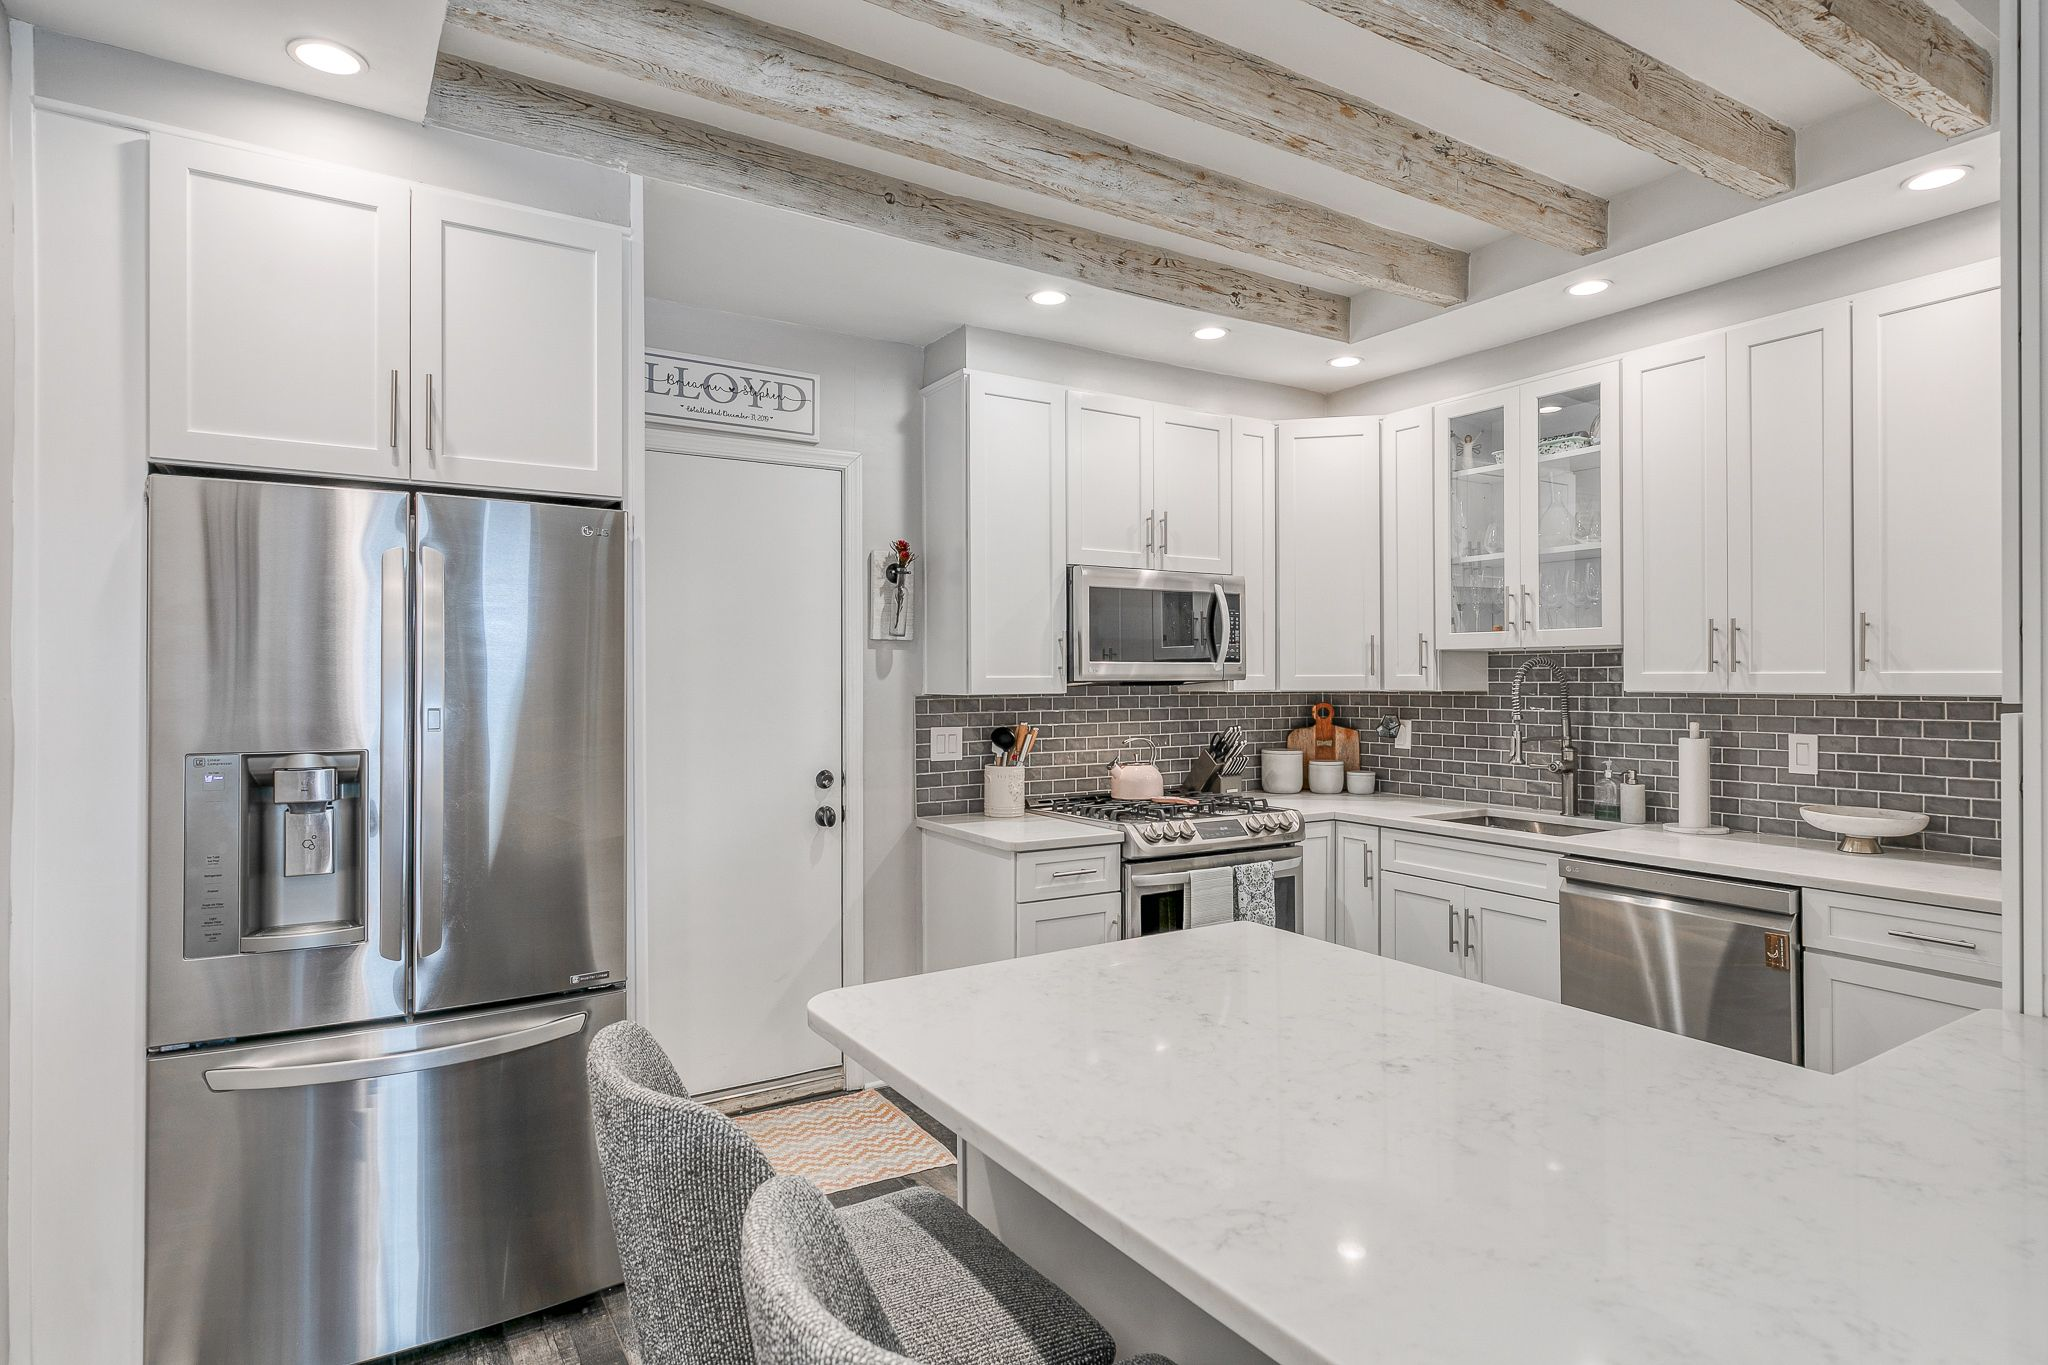 who doesn't love a white kitchen with exposed beams? #justlisted #linkinbio